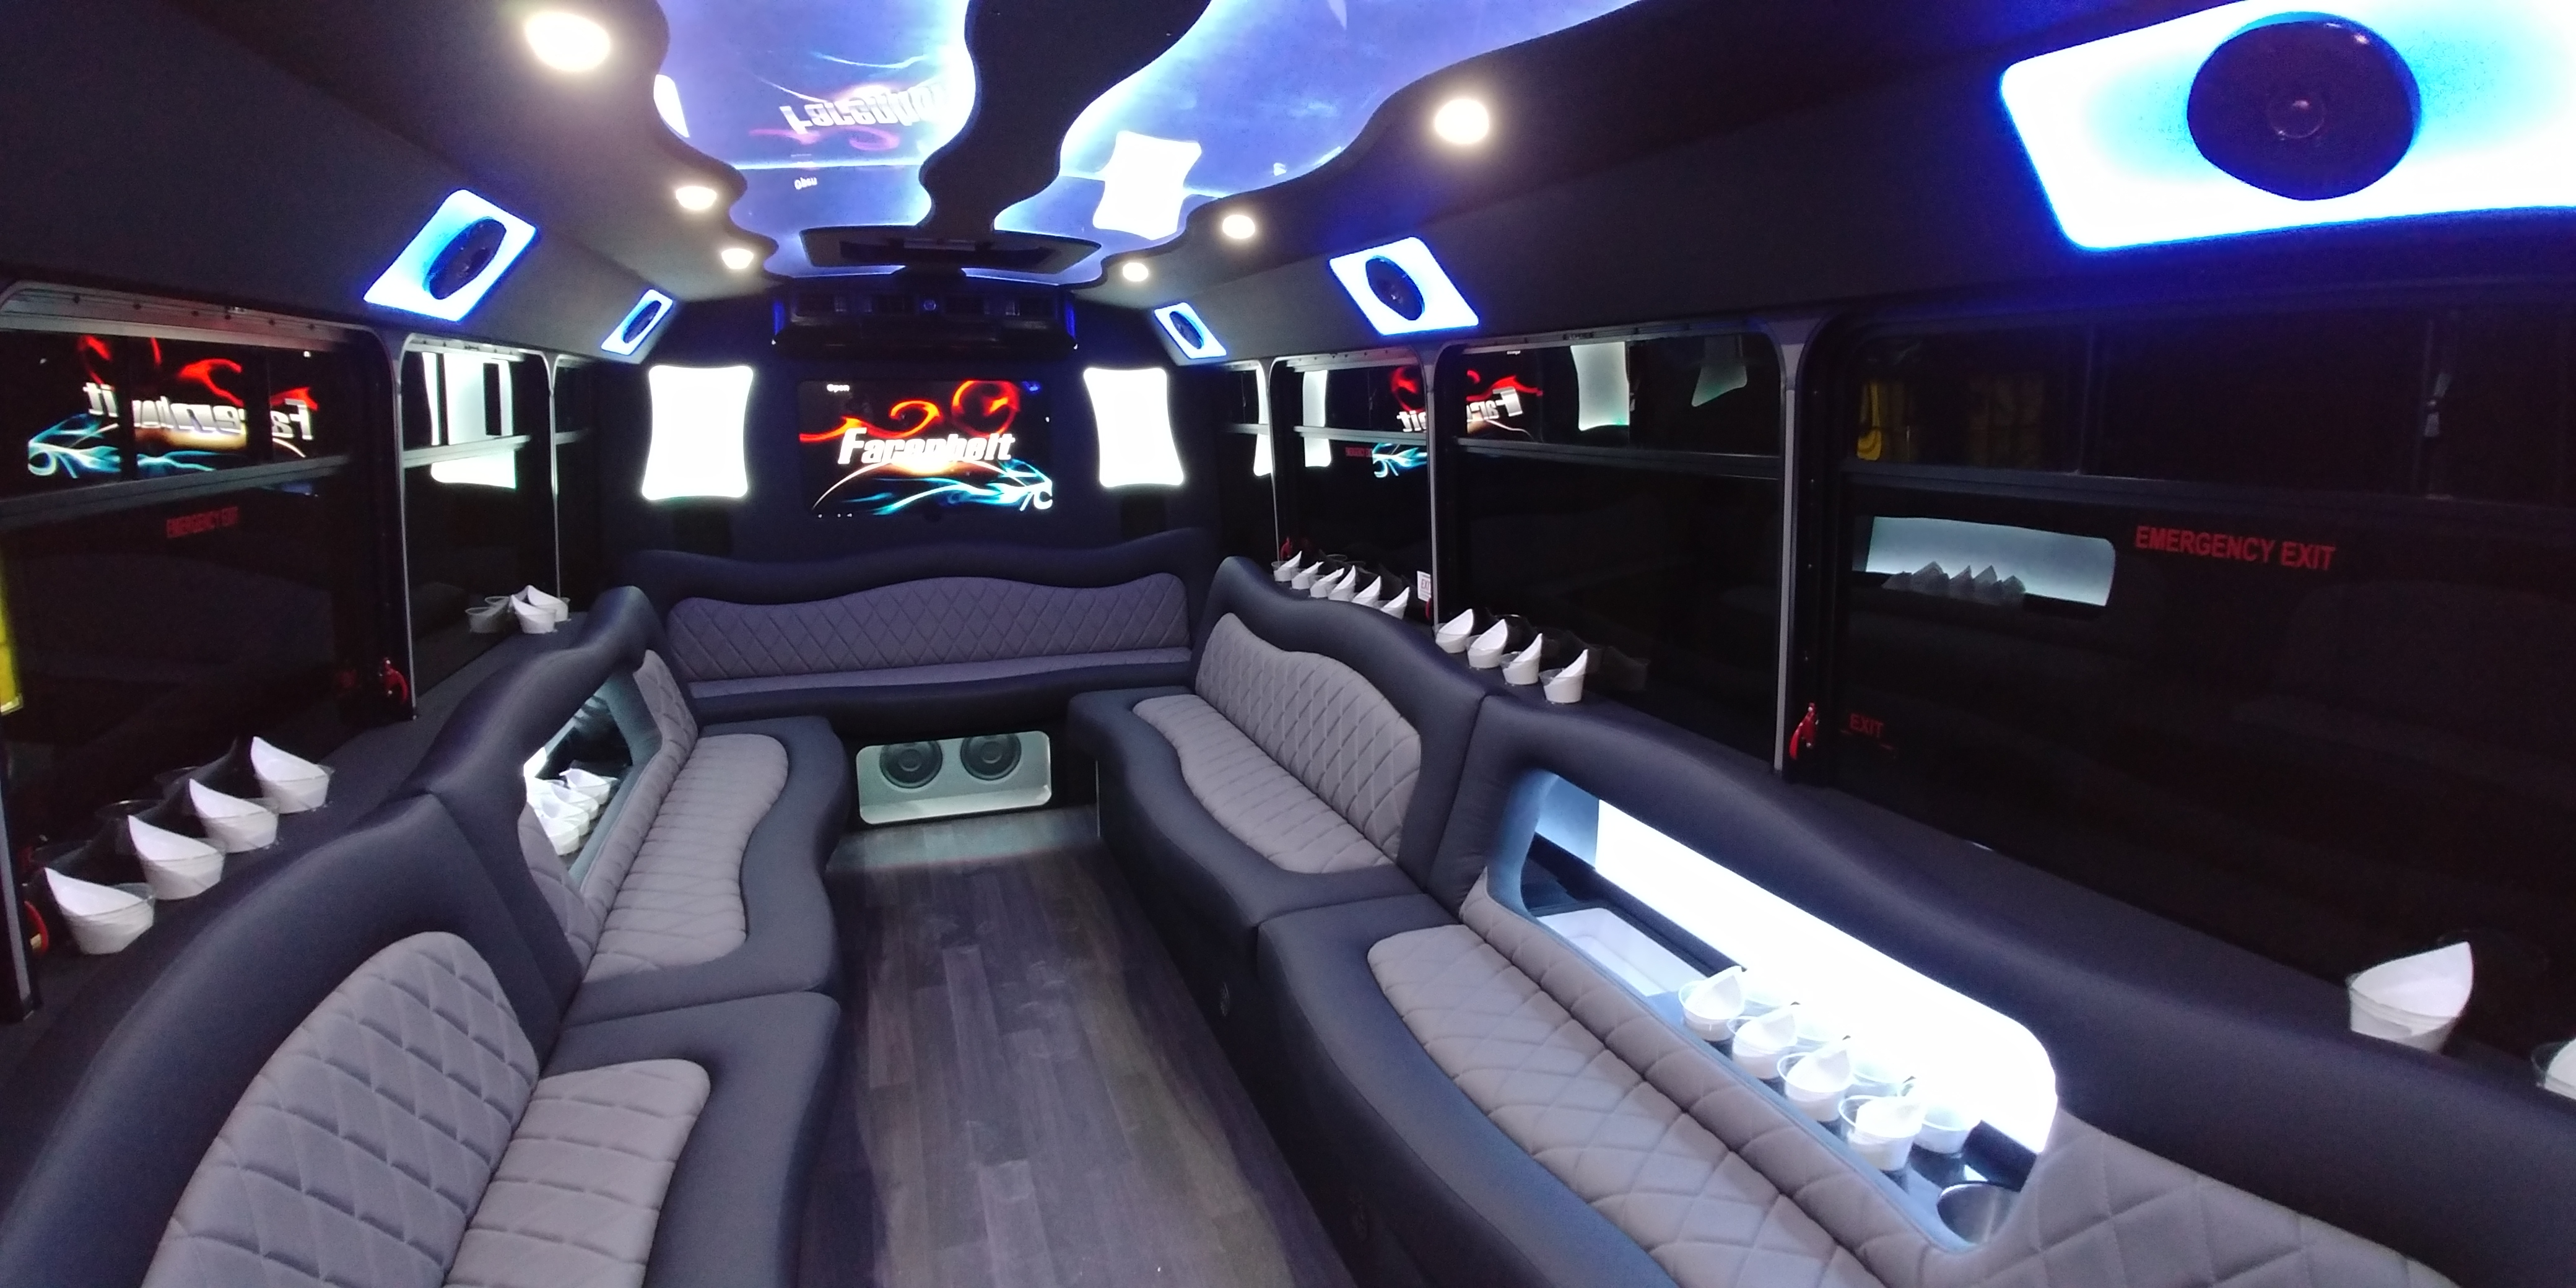 18 Passenger Luxury Limo Bus Nighttime Interior 4